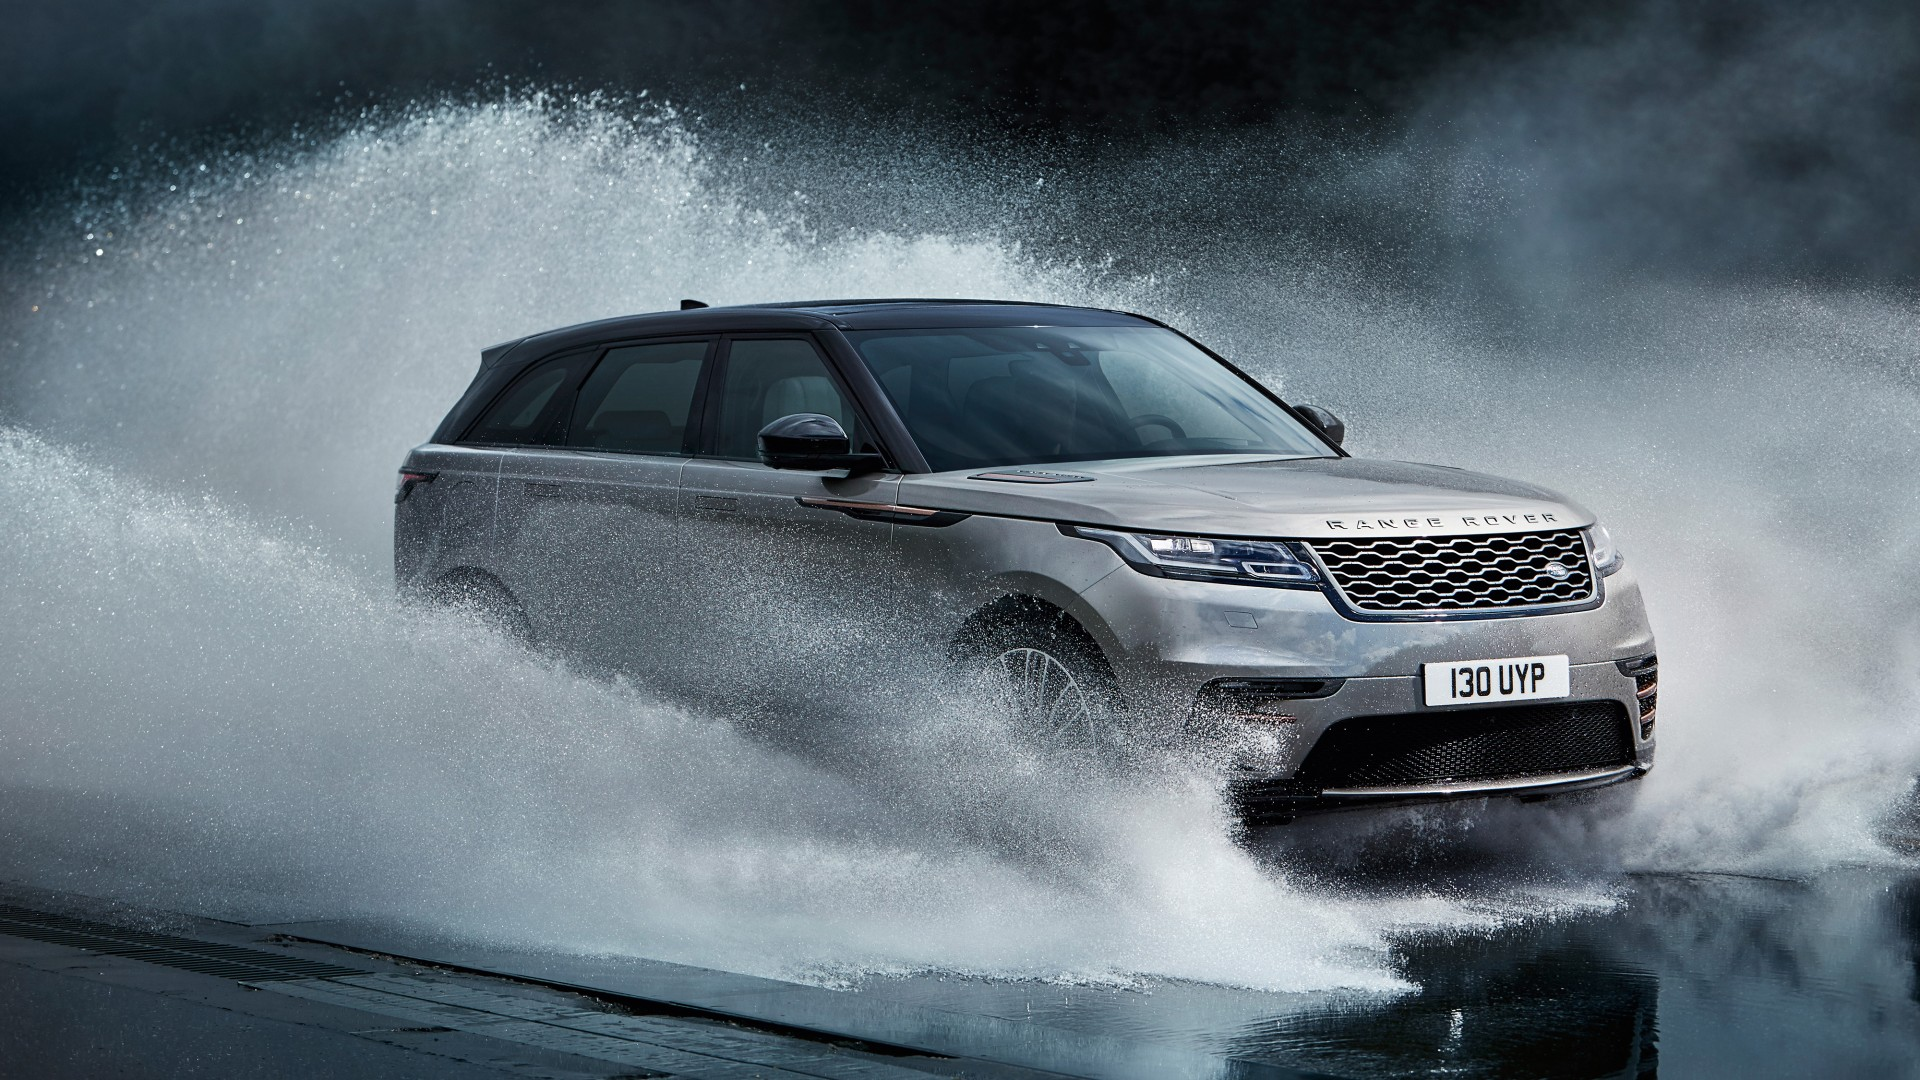 Range rover velar 2018 4k wallpaper hd car wallpapers - Wallpaper hd 4k car ...